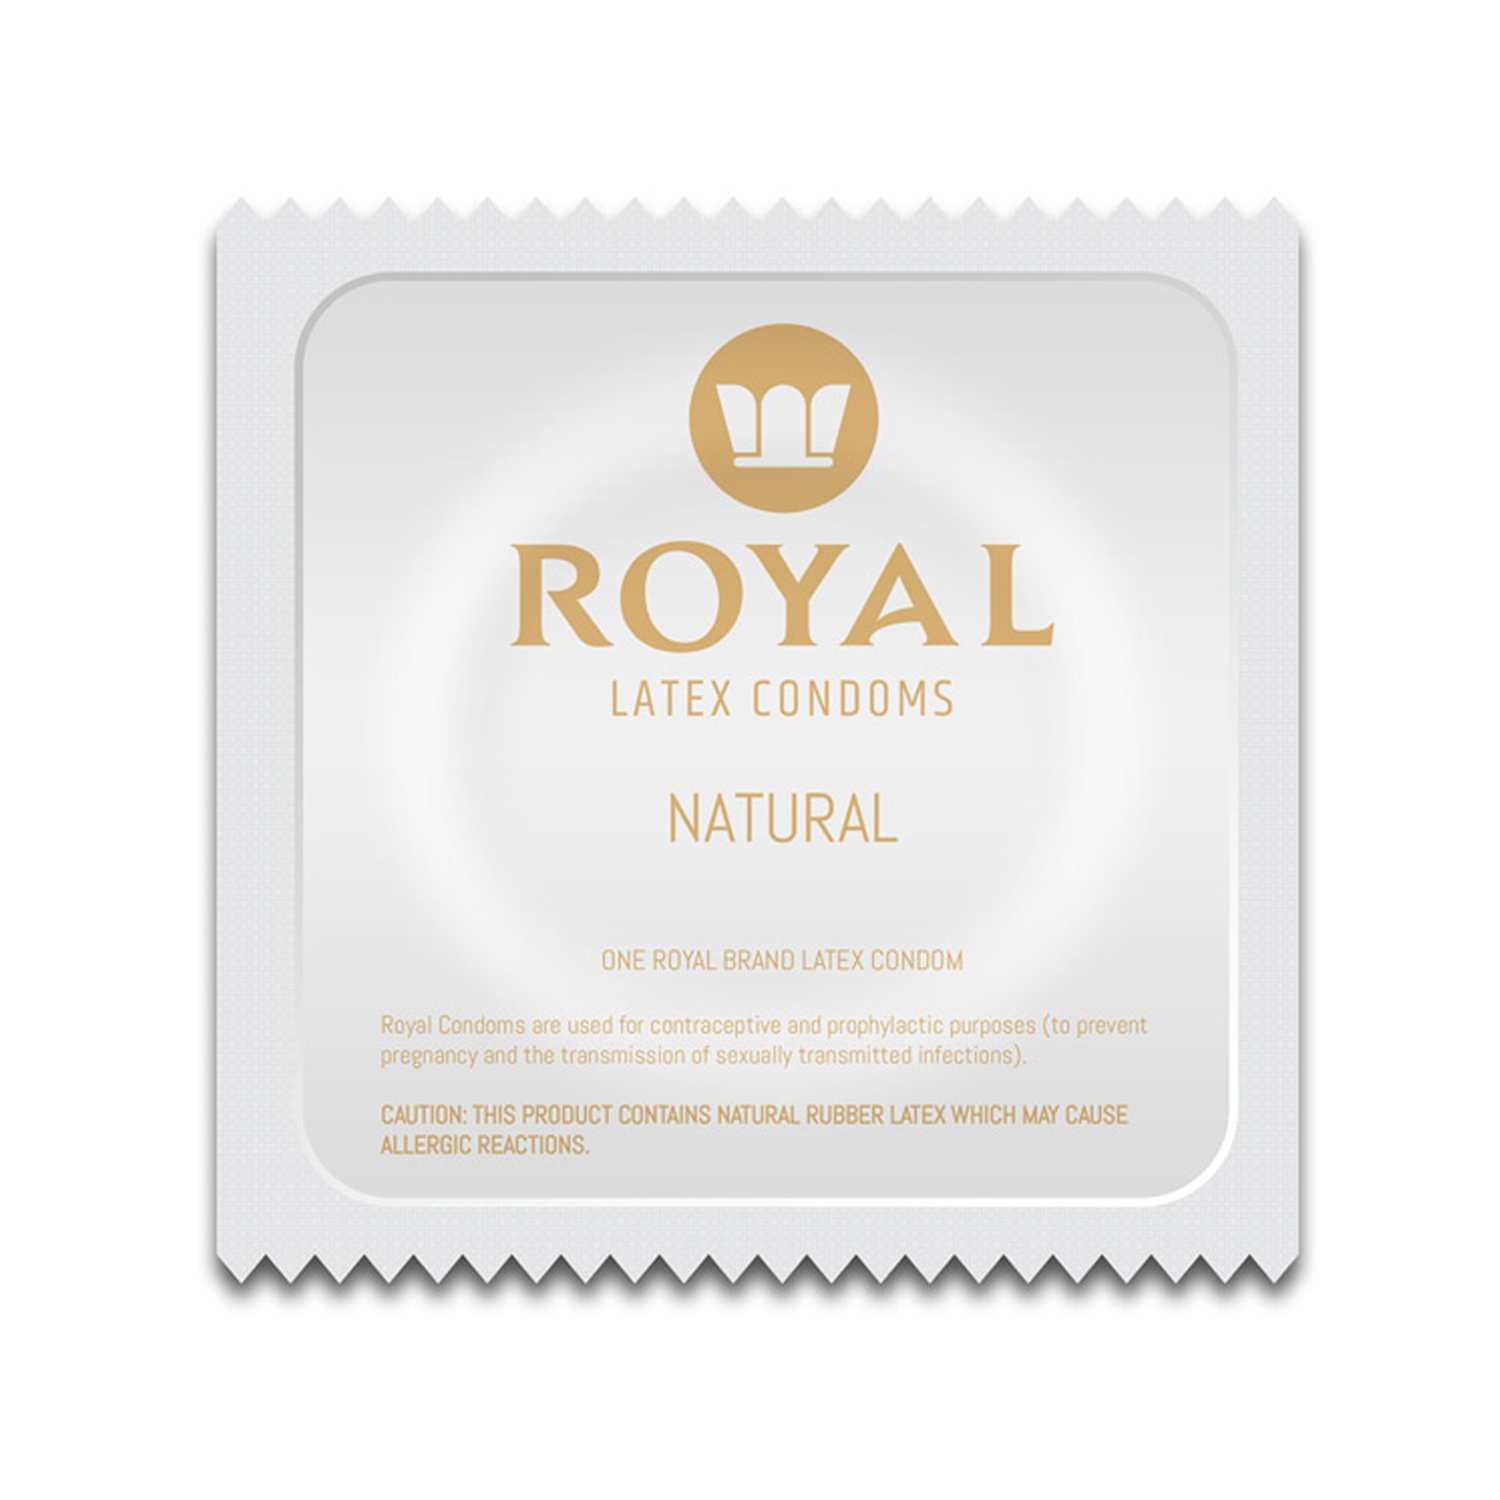 Royal Condoms - Ultra Thin, All Natural, Organic, Gluten Free, Nitrosamine Free, BPA Free, Cruelty Free, Vegan, Latex Covered in Odor Free Water Based Premium Lube, Bulk 100 Count by Royal Condoms